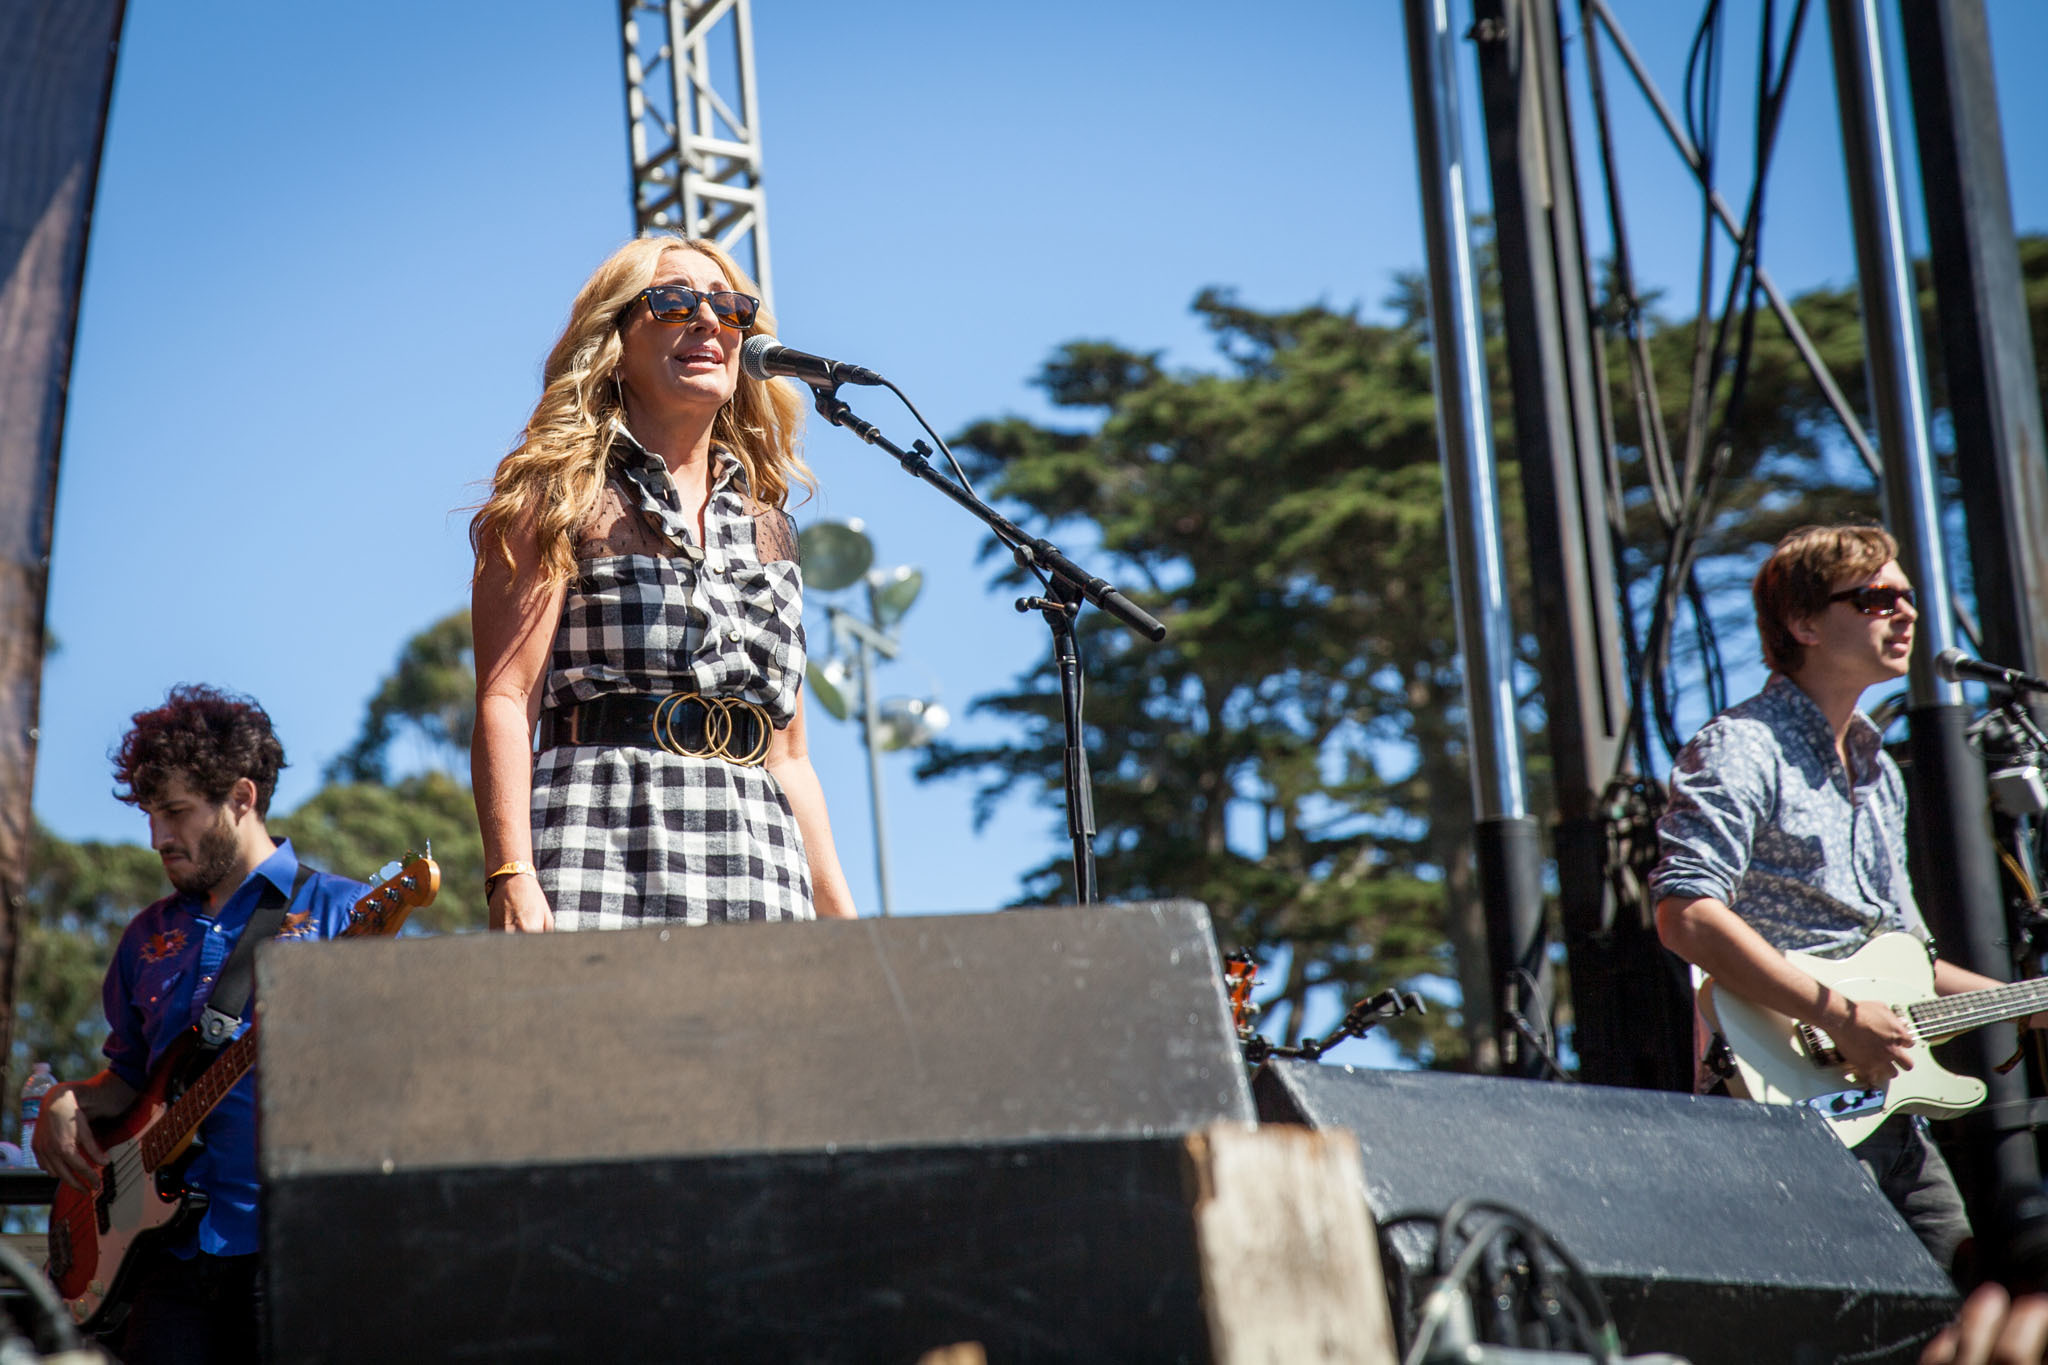 Lee Ann Womack at Hardly Strictly Bluegrass 2015